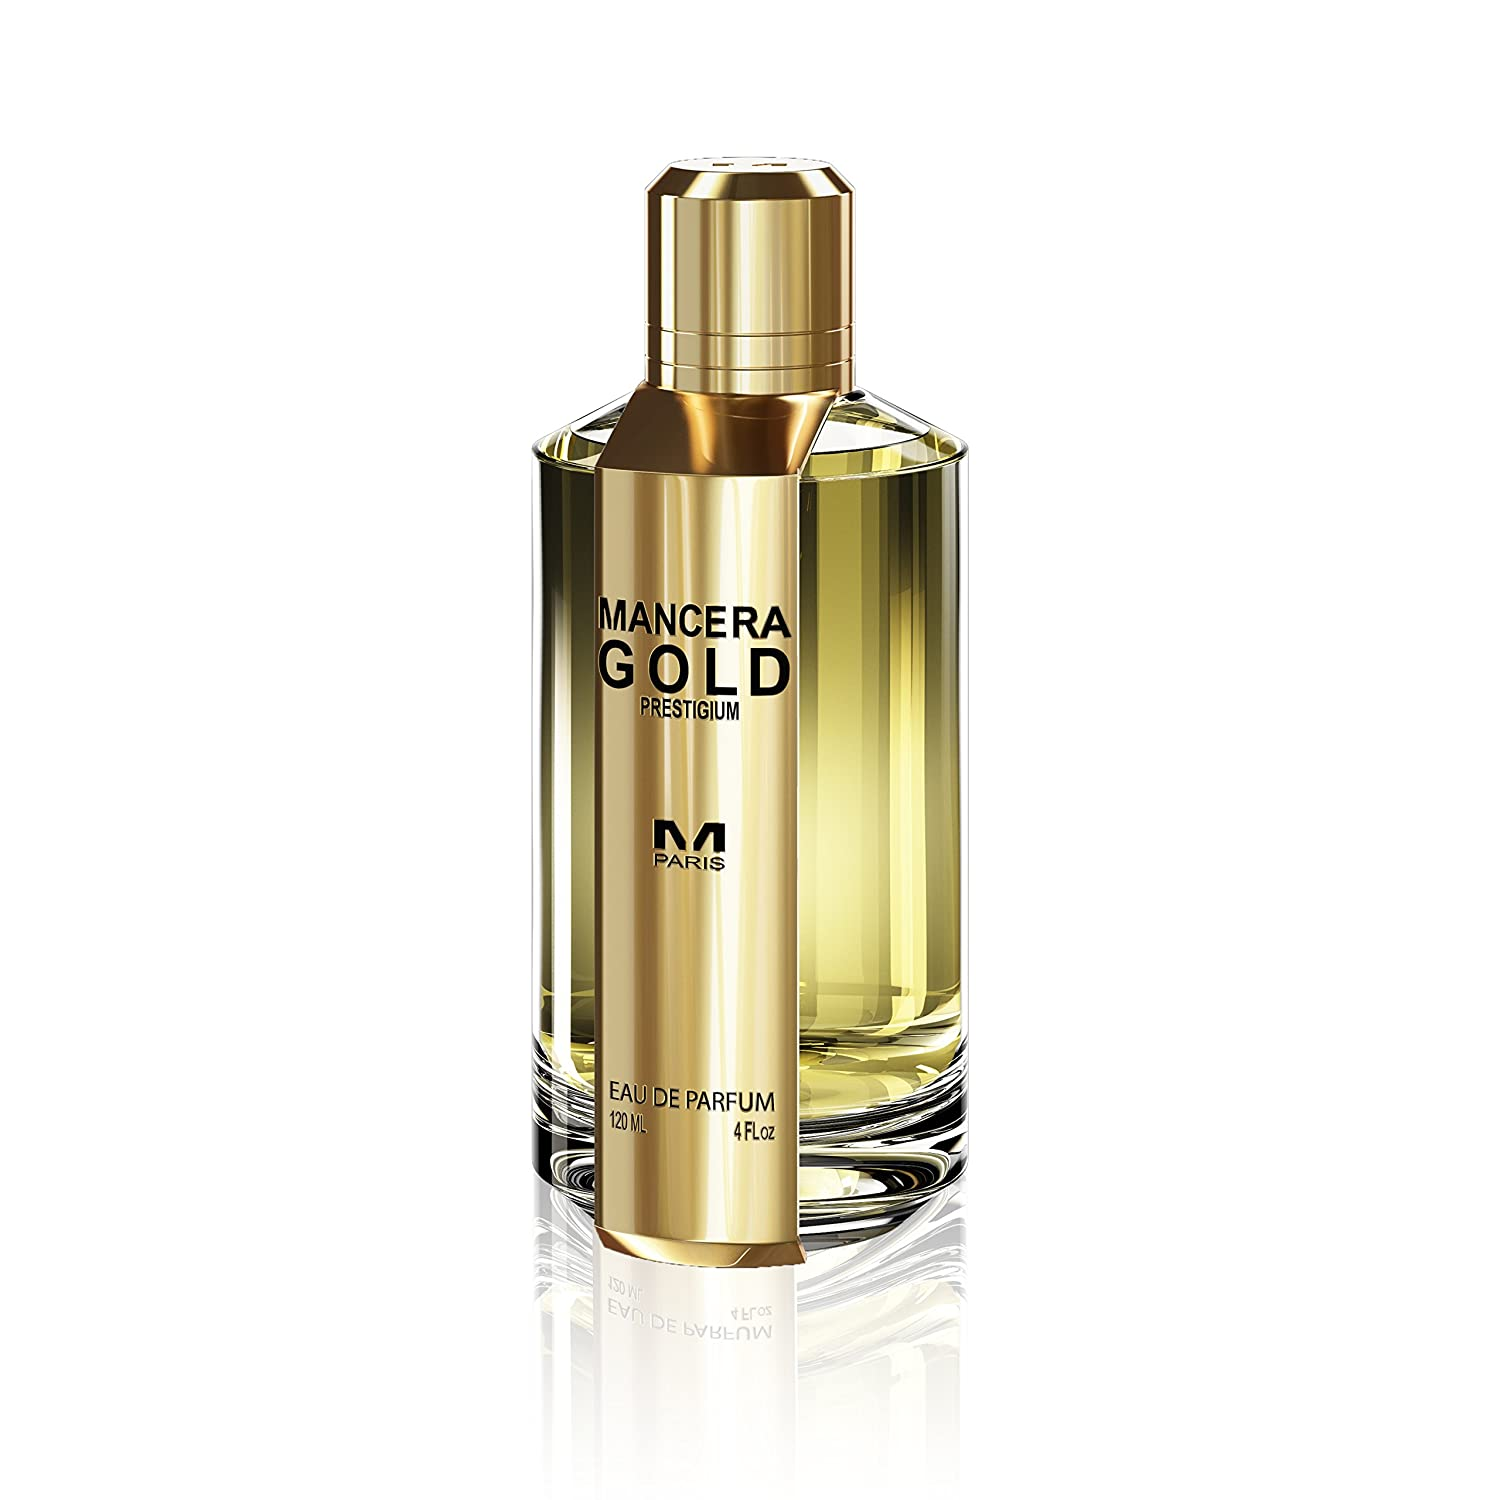 Mancera Gold Prestigium by Mancera Eau De Parfum Spray 4 oz / 120 ml (Women) B078Y36PK2